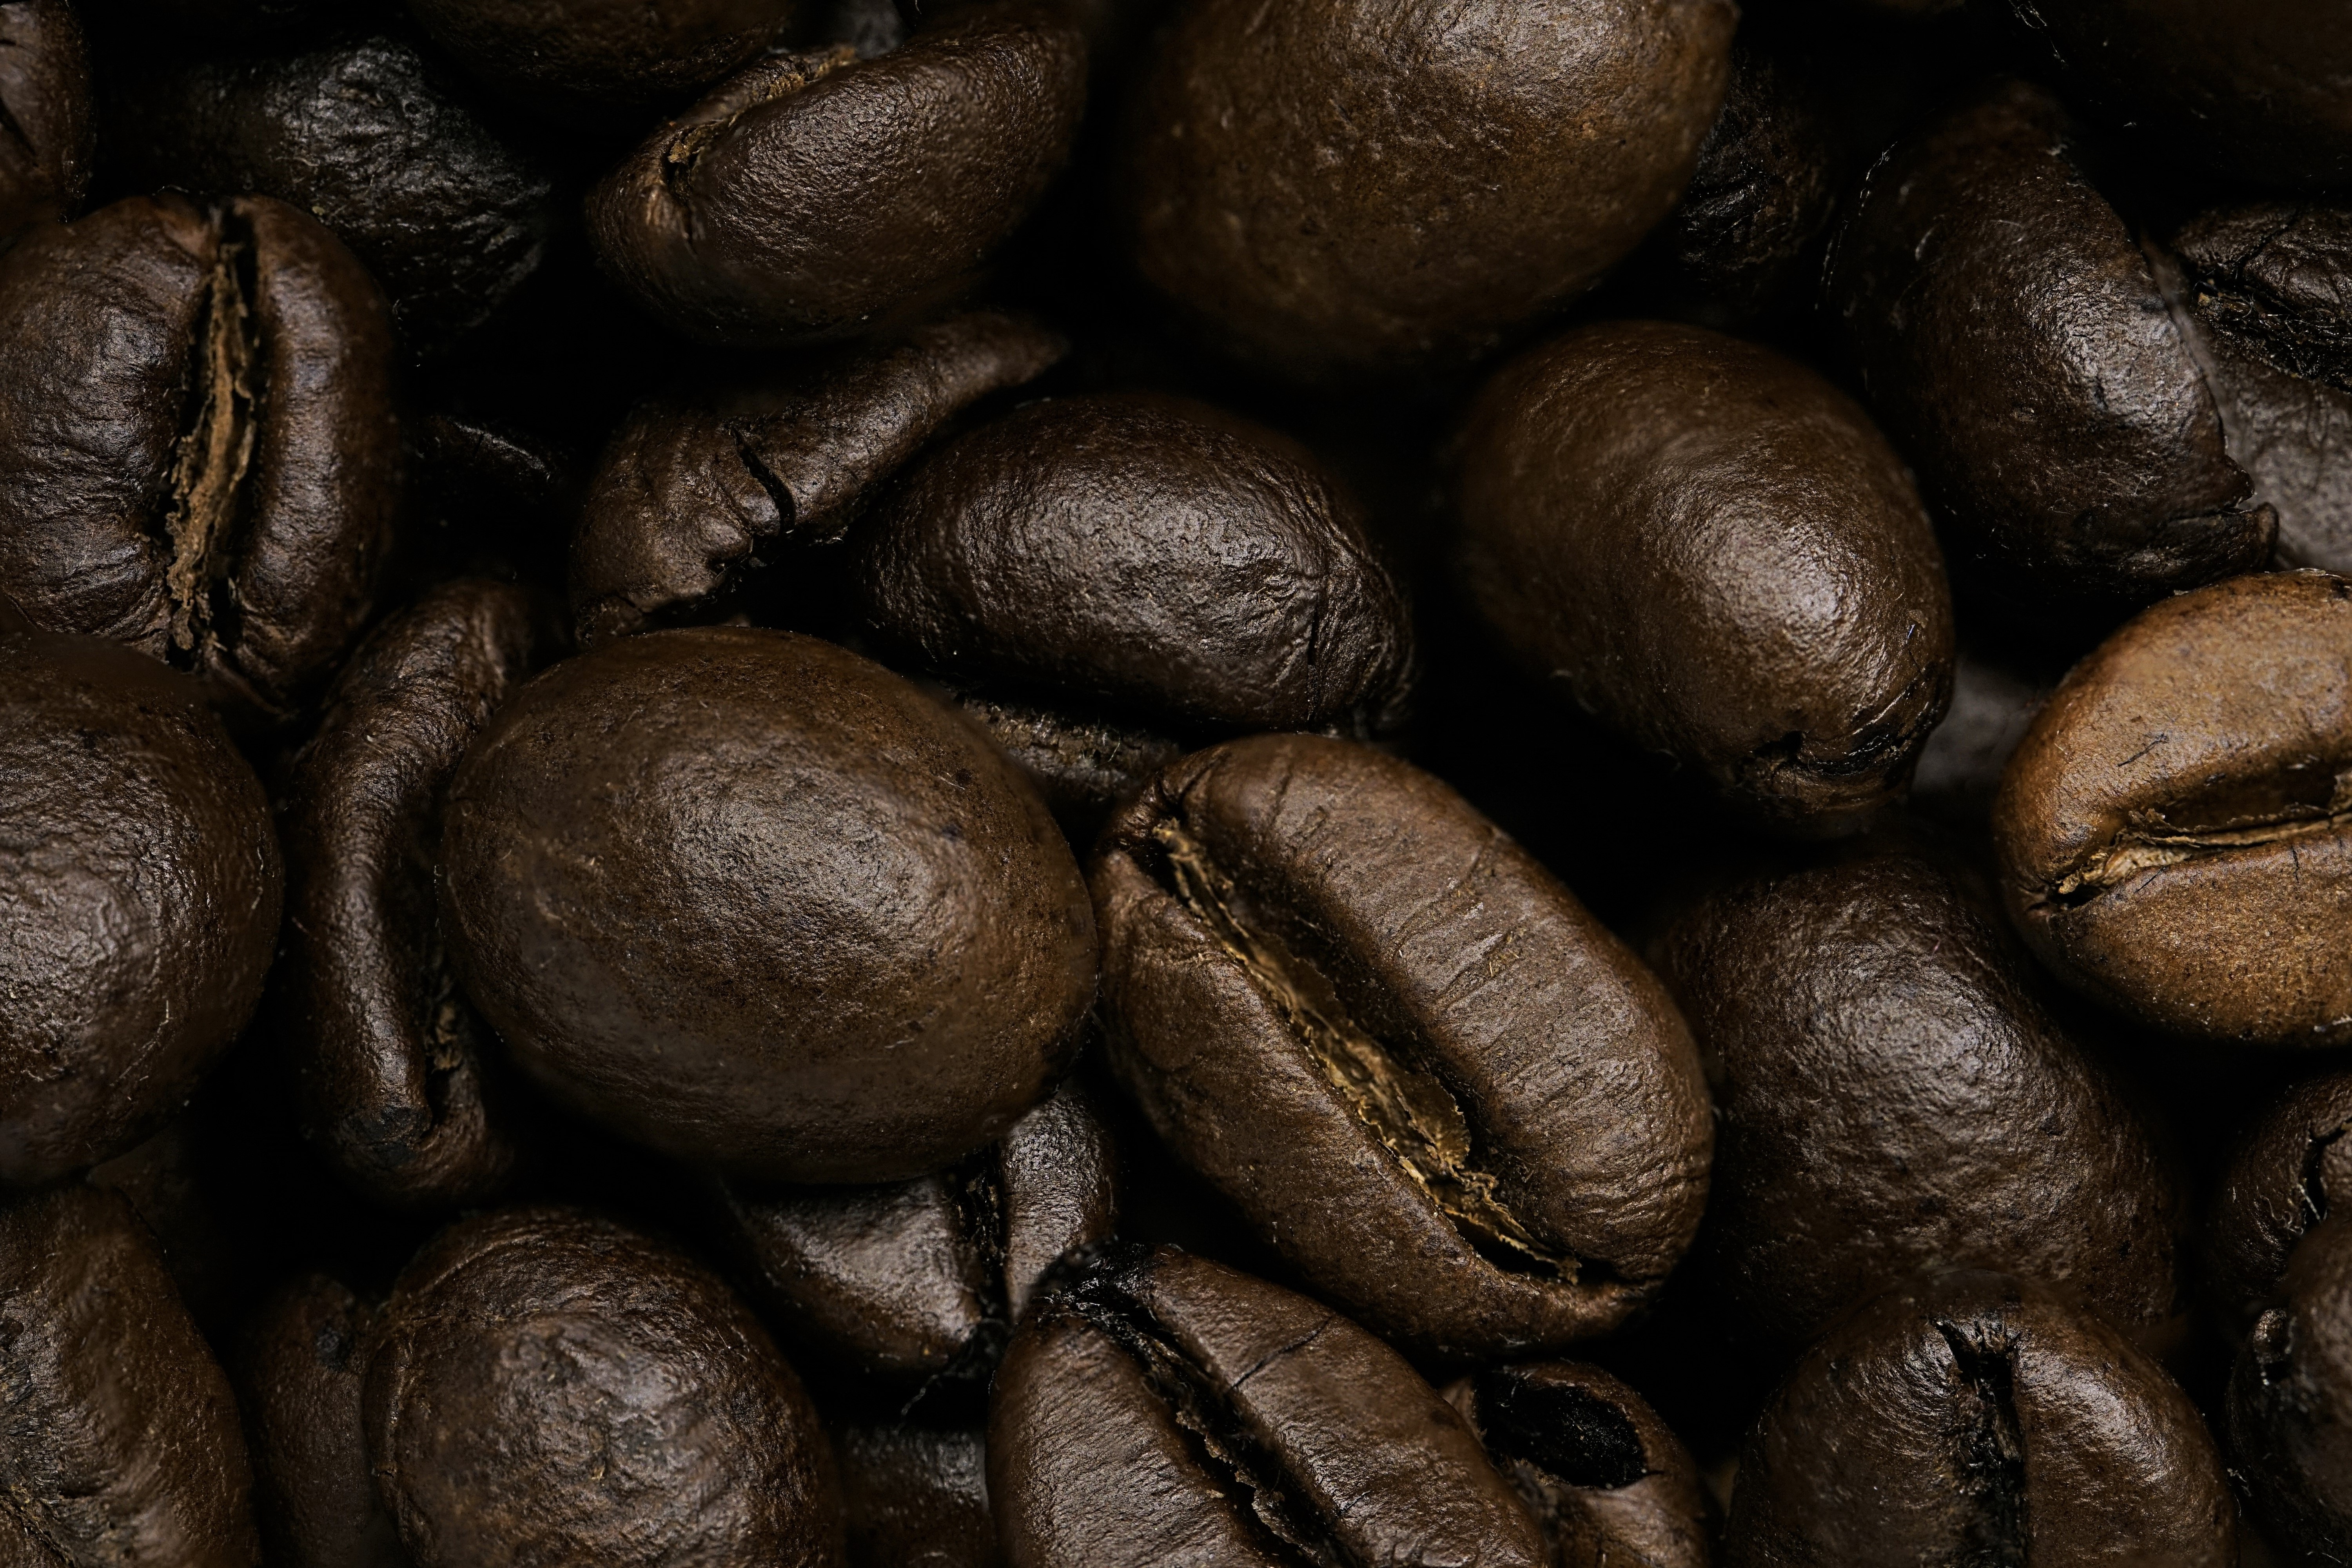 61521 download wallpaper Coffee, Macro, Close-Up, Coffee Beans screensavers and pictures for free